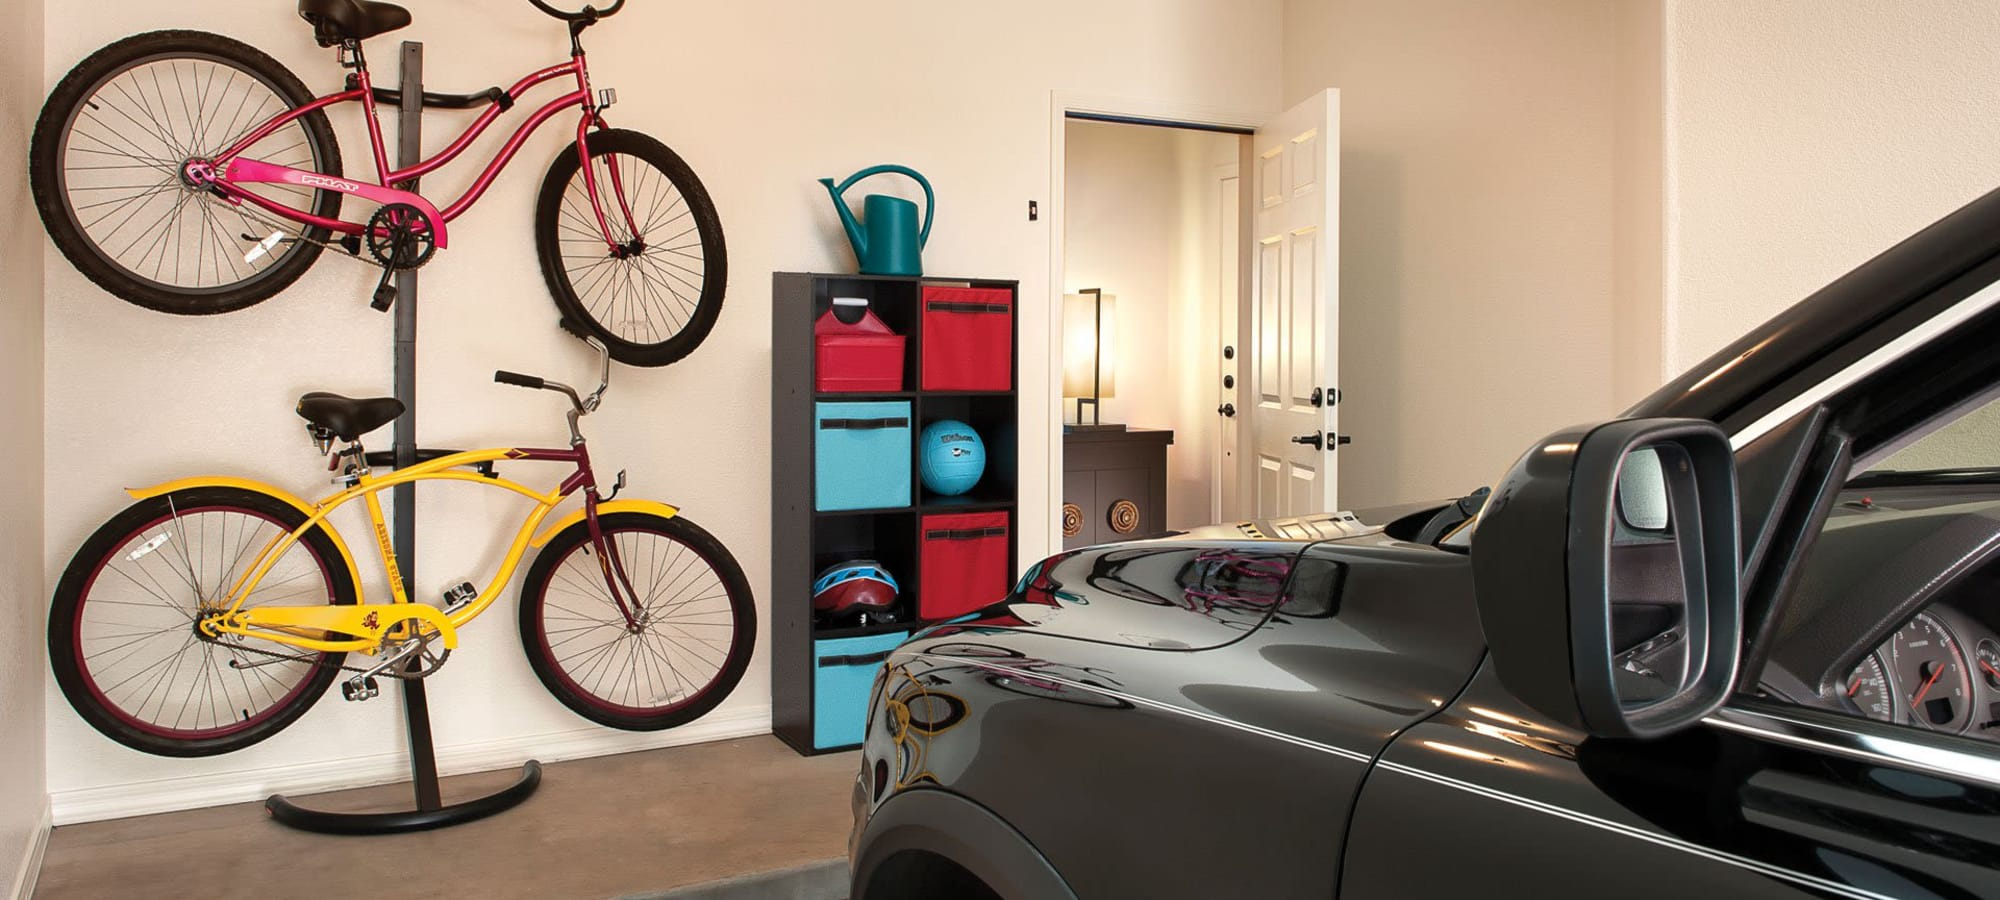 Private garage for apartment home at San Milan in Phoenix, Arizona